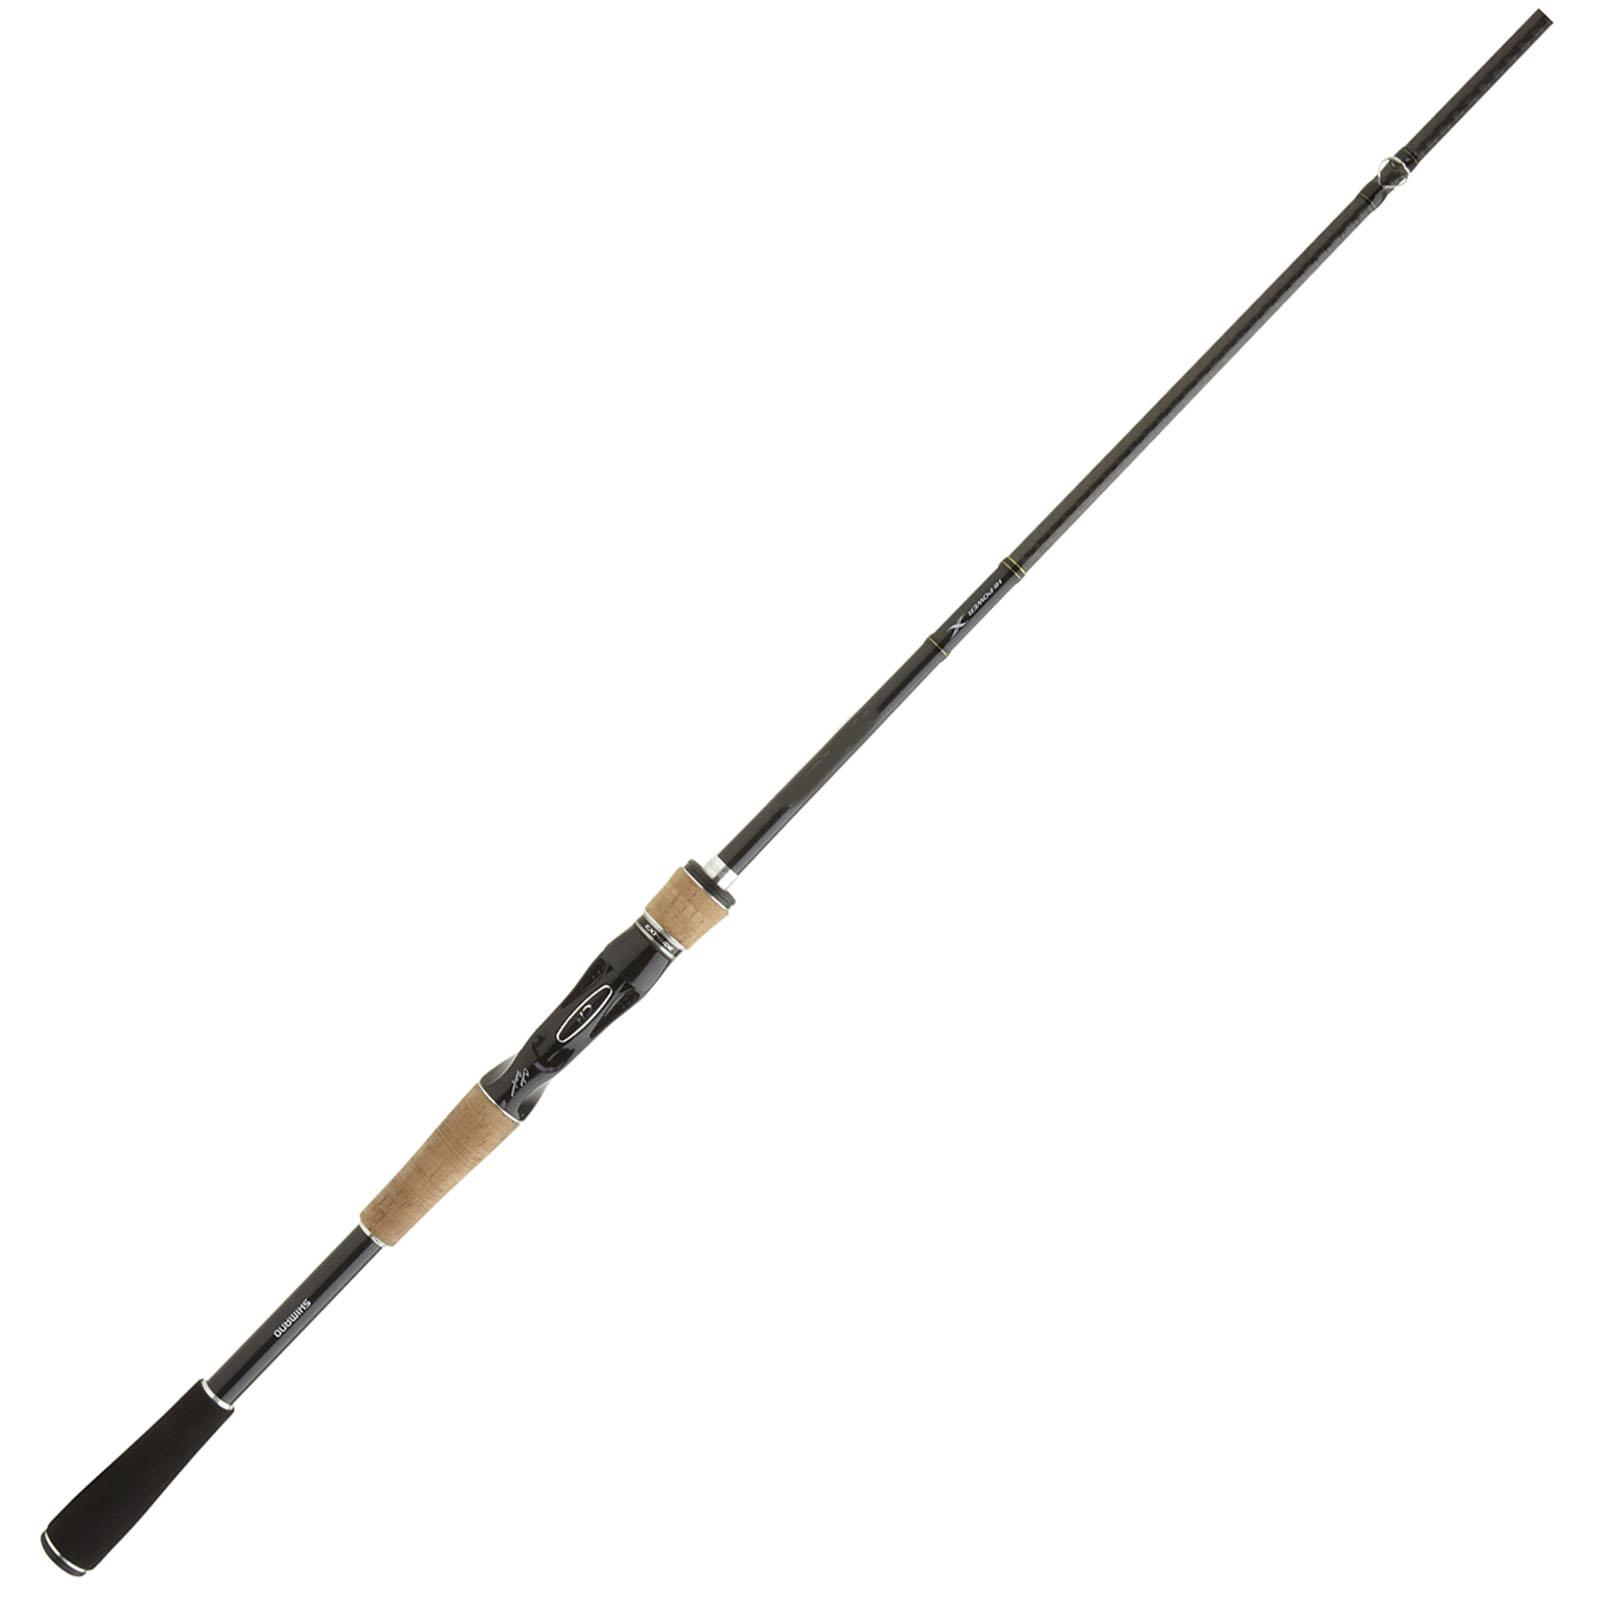 Shimano Expride Spinning Rod